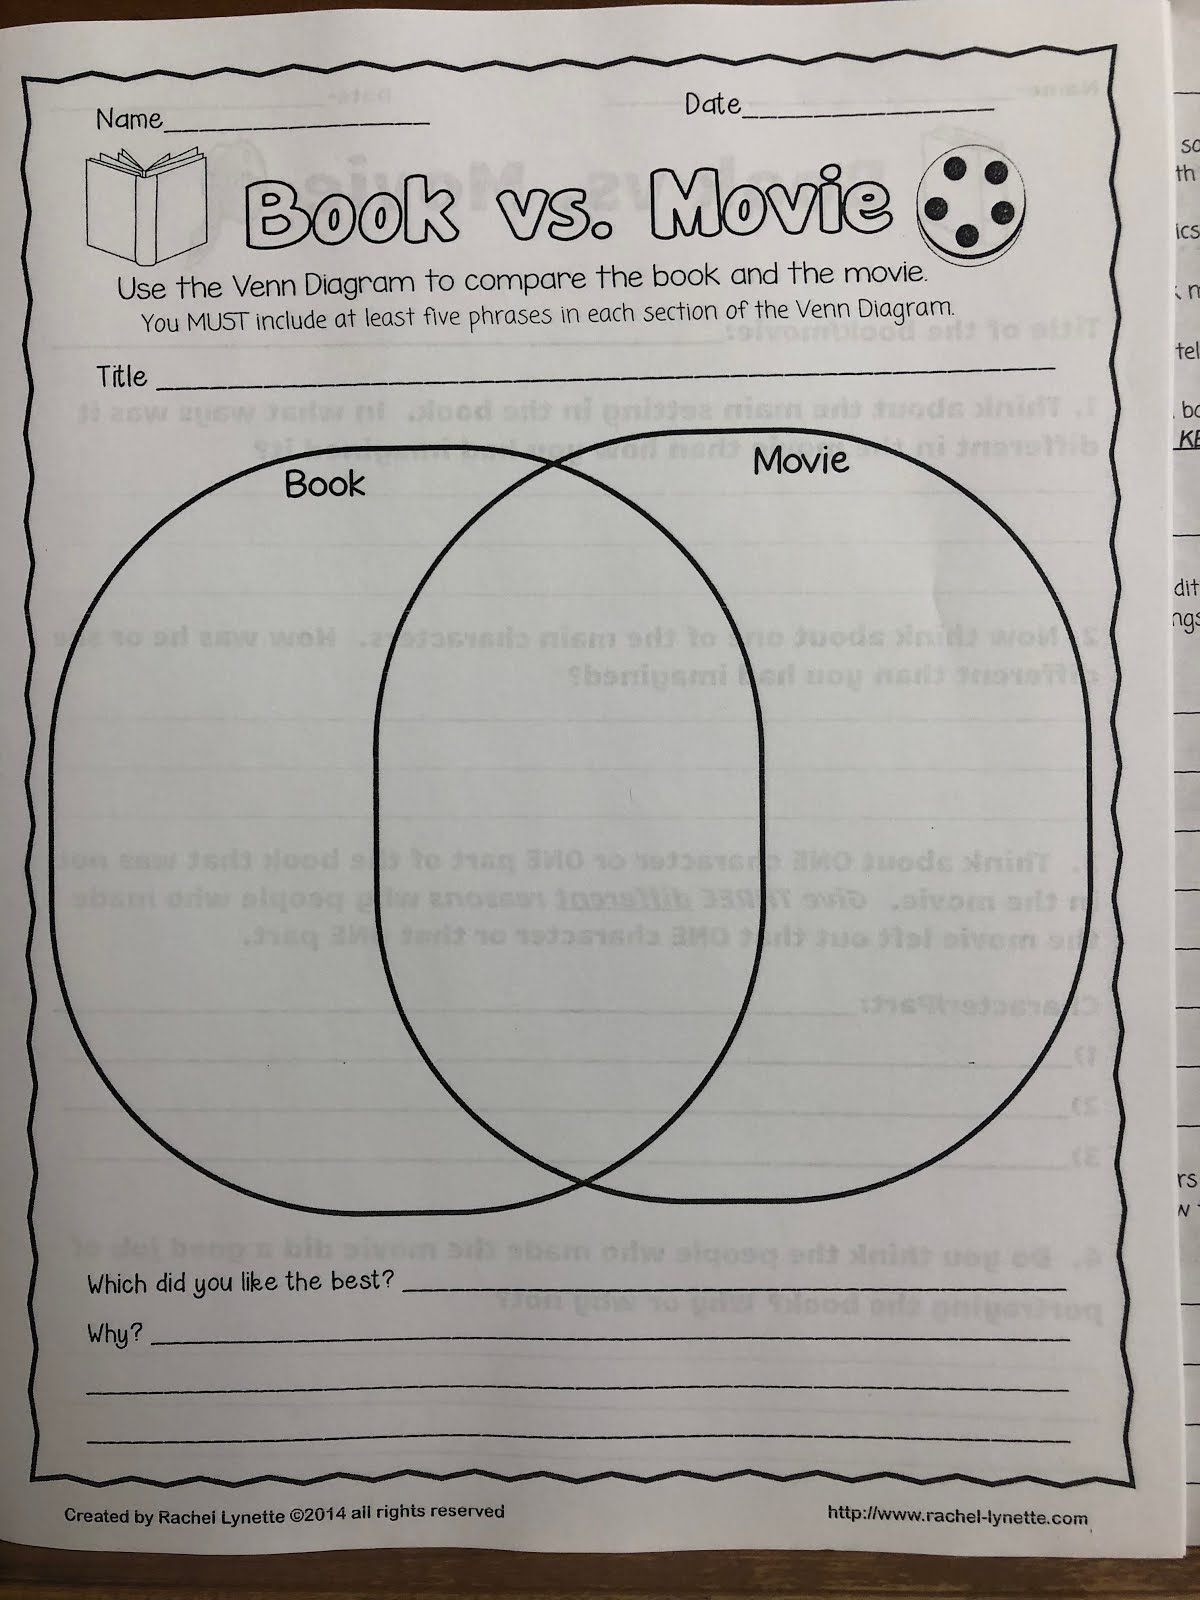 7 black ela book vs movie due monday the listing on the venn diagram the book vs movie sheet is pictured below in the comment section please tell us your favorite part of the movie ccuart Choice Image